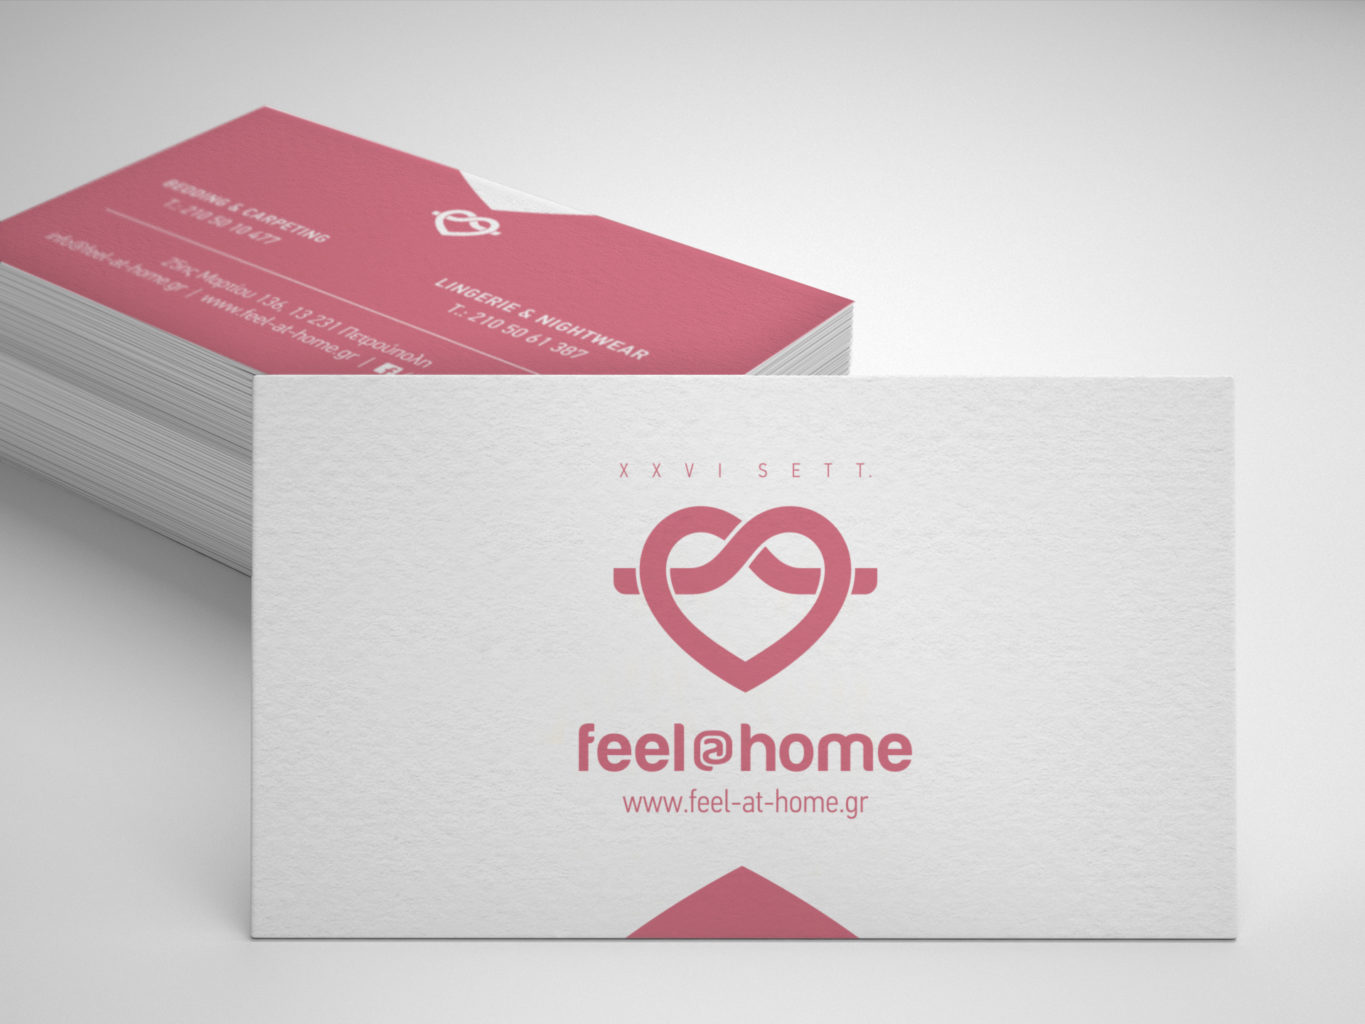 Feel at home lingerie and nightwear business cards